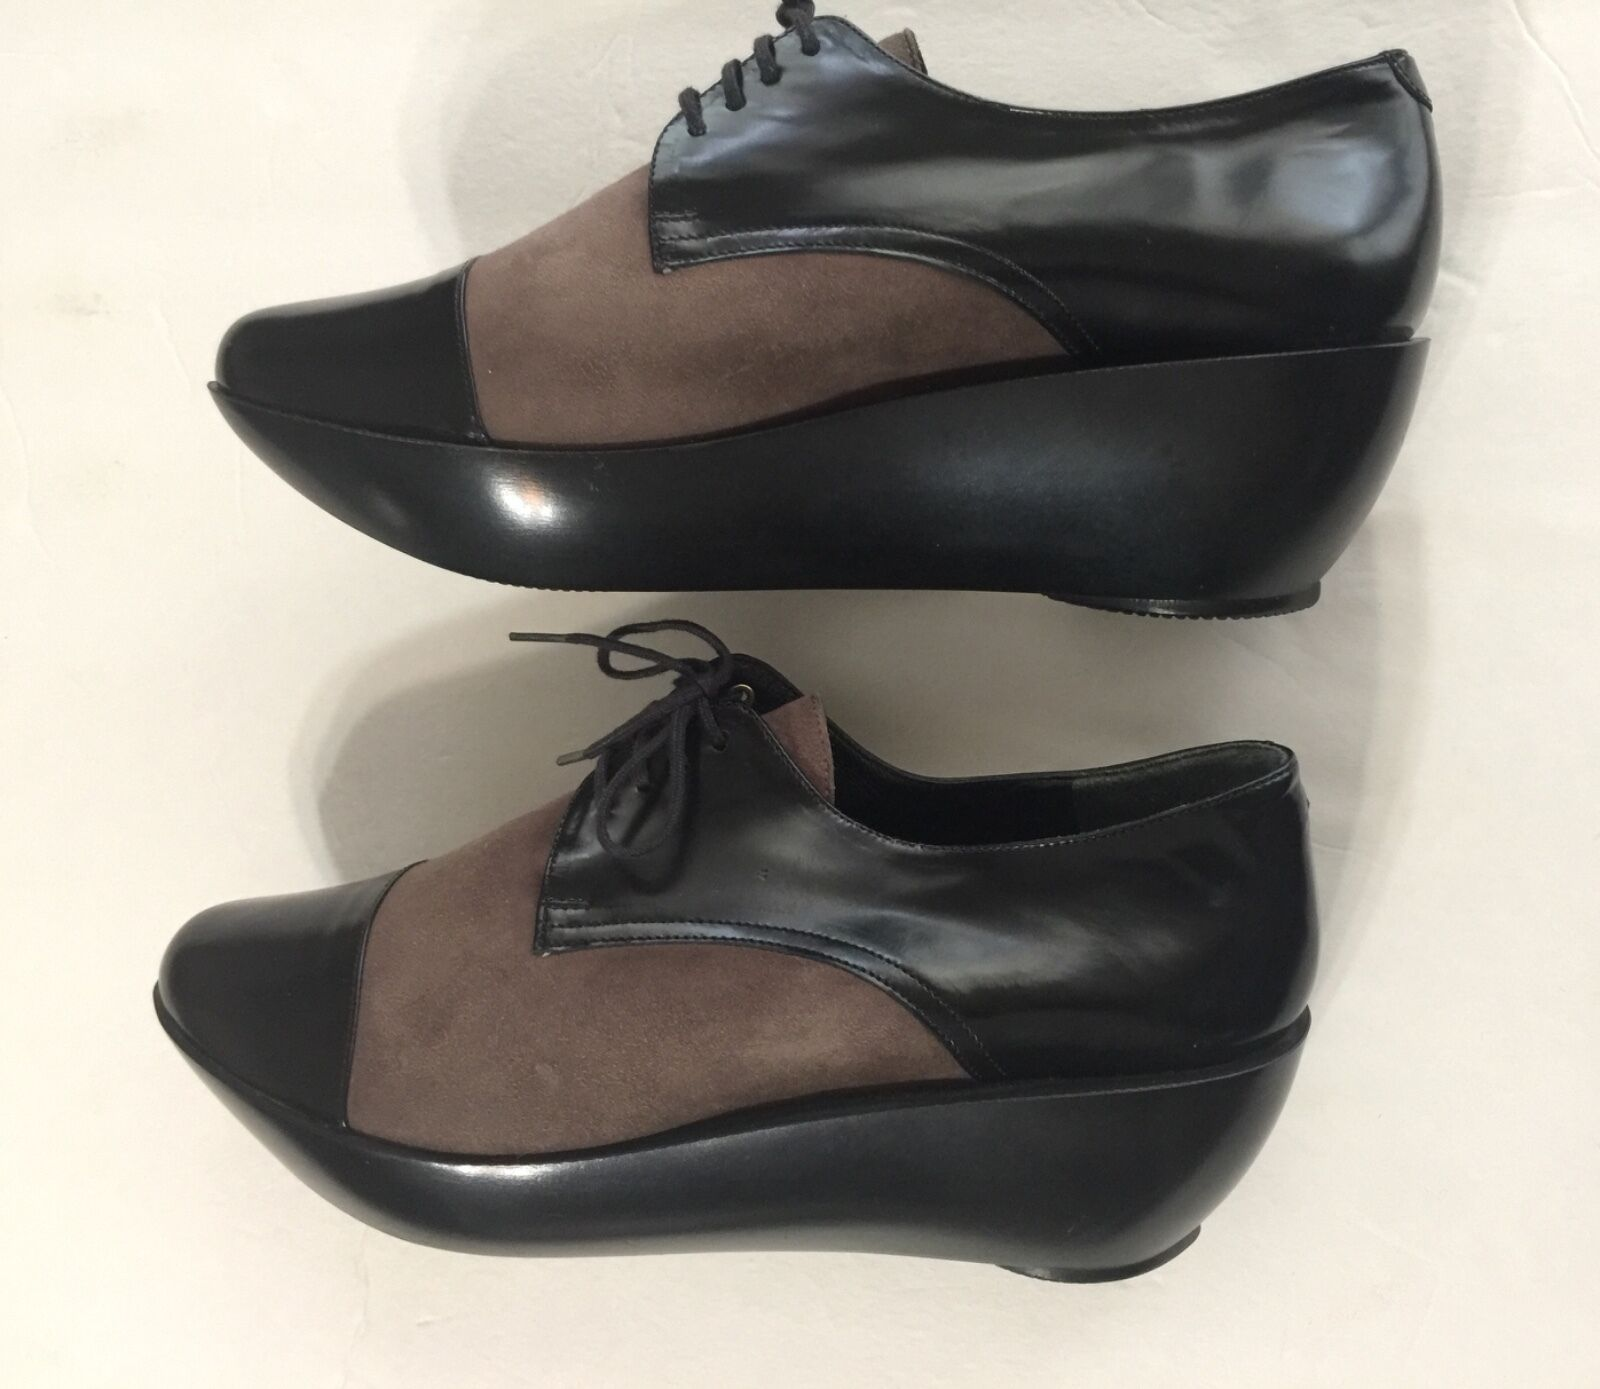 ROBERT CLERGERIE WOMEN SIZE 8.5 8.5 8.5 B  BLACK & BROWN OXFORD PLATFORM SUEDE &LEATHER 35dc26